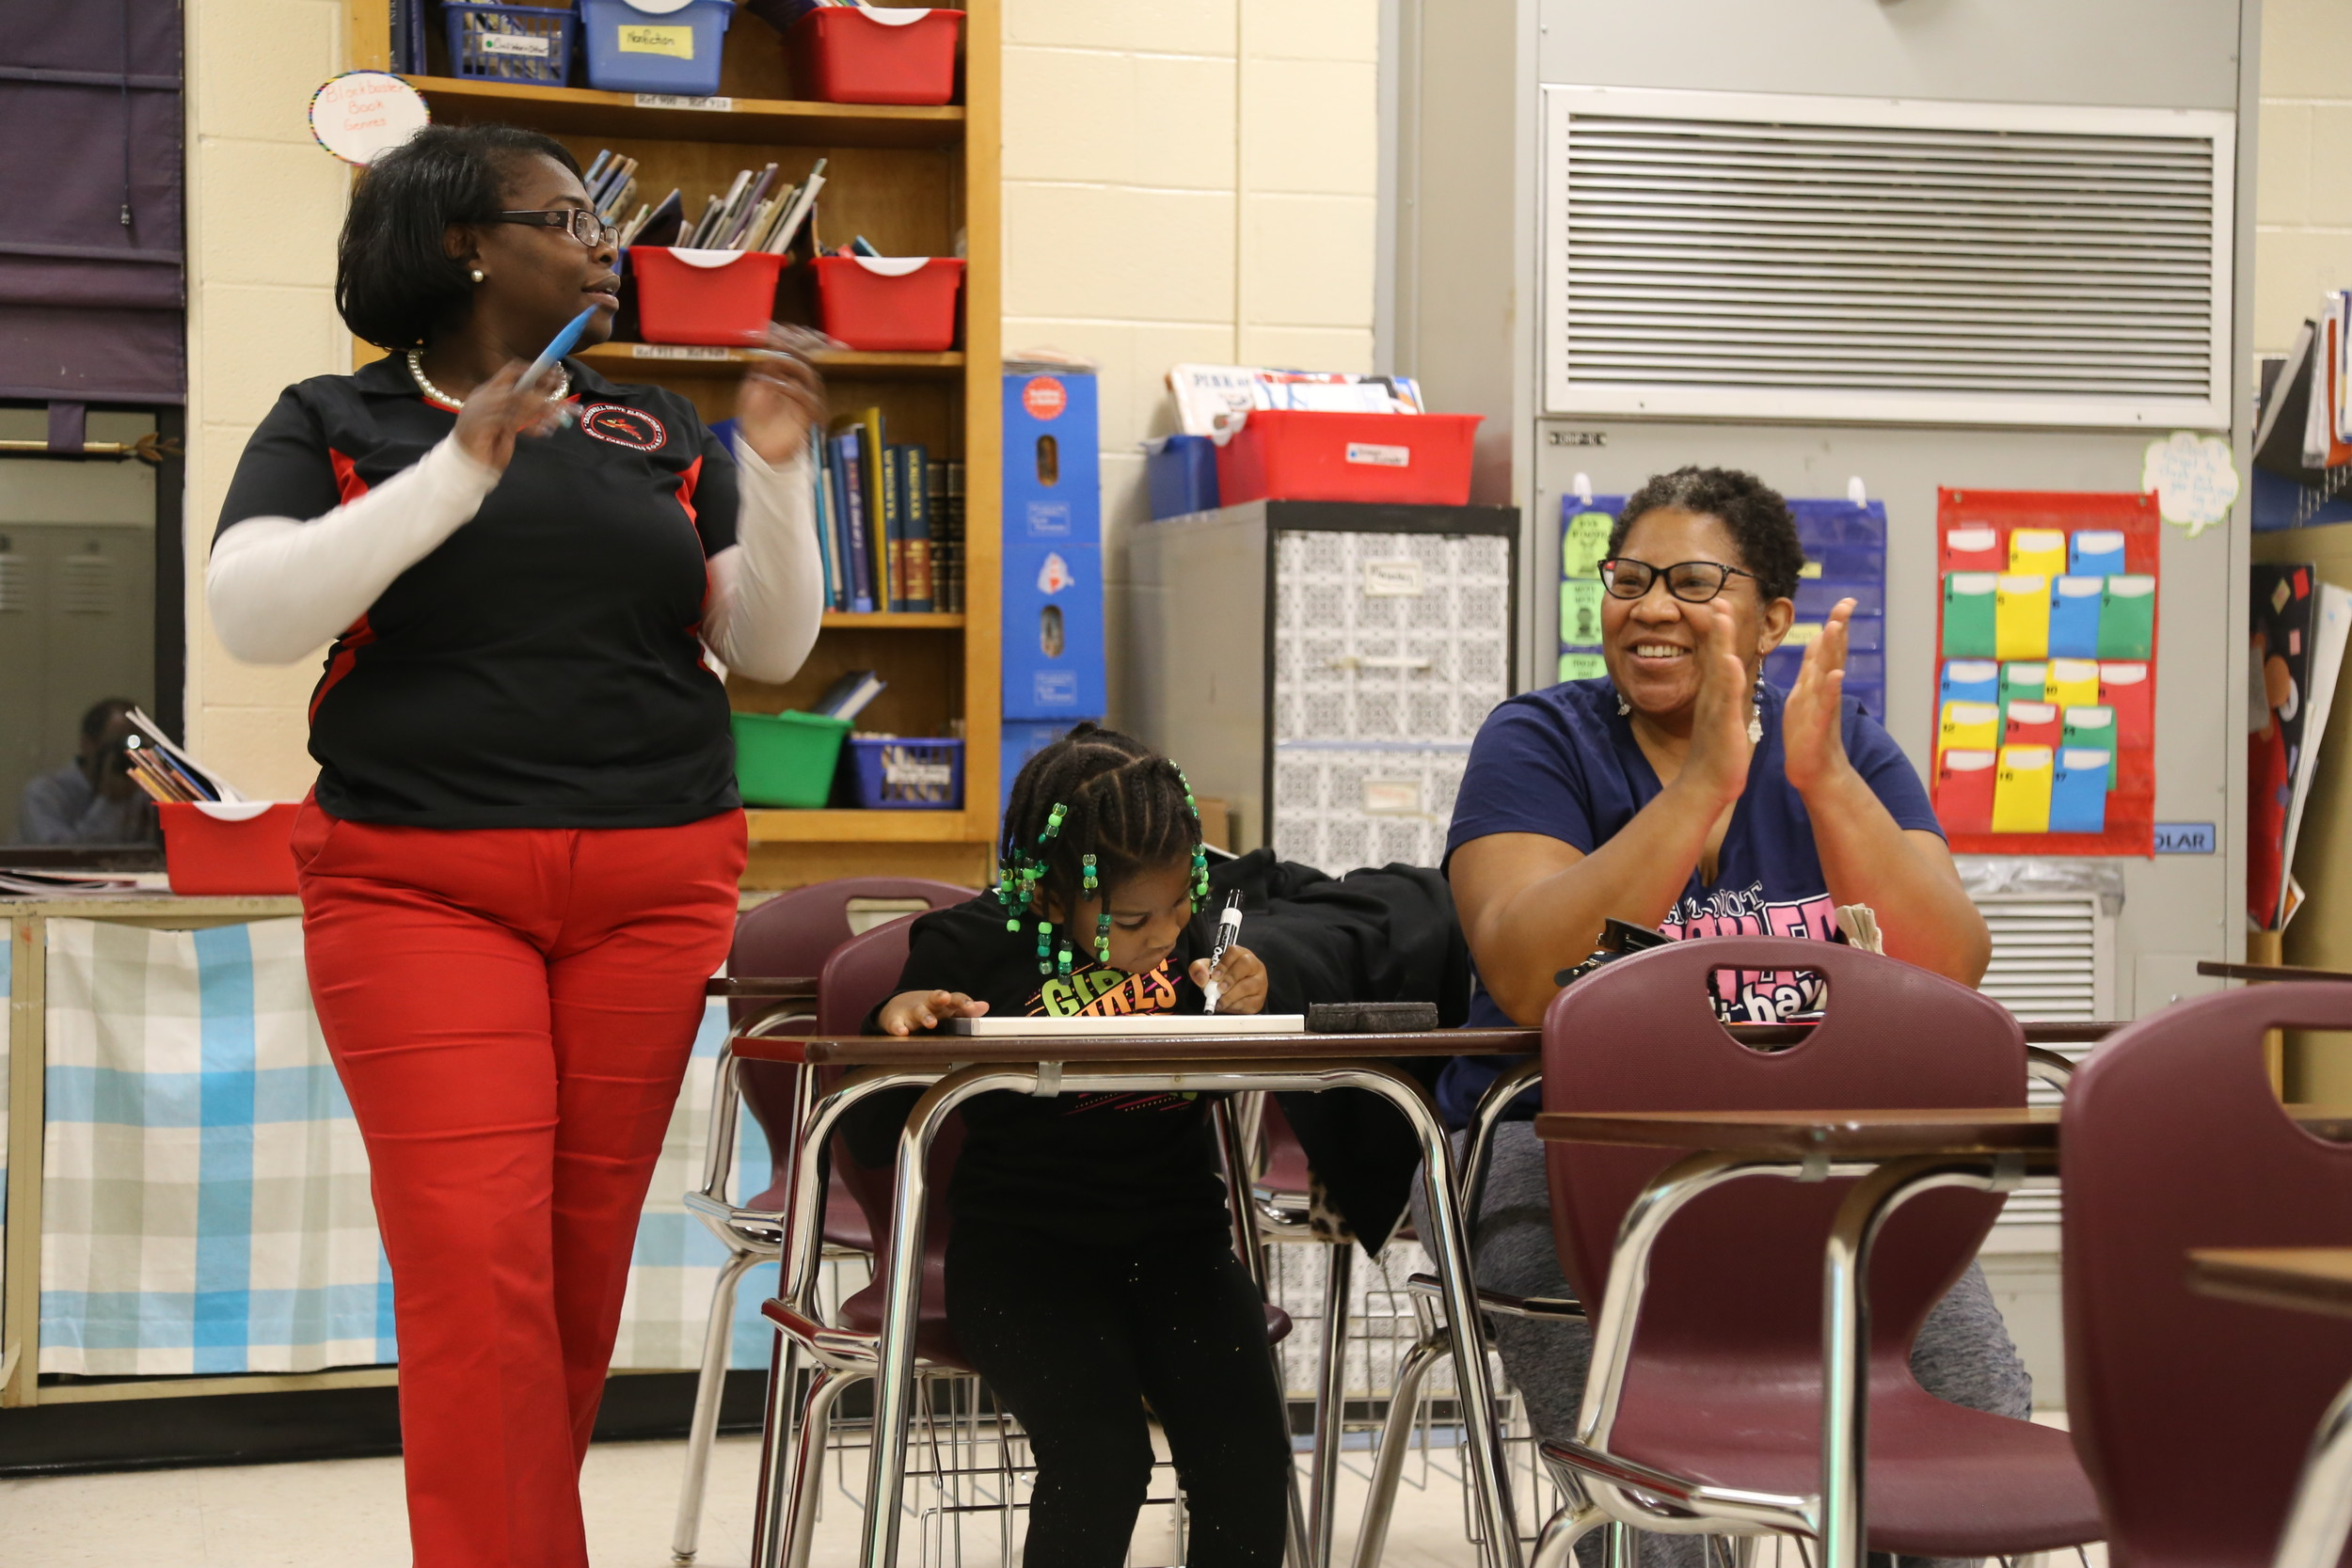 From left, Crosswell Drive Elementary School teacher Fredericka Plowden, student Alena Bradley, and her mother, Dawn Bradley, participate in Family Night at the school.